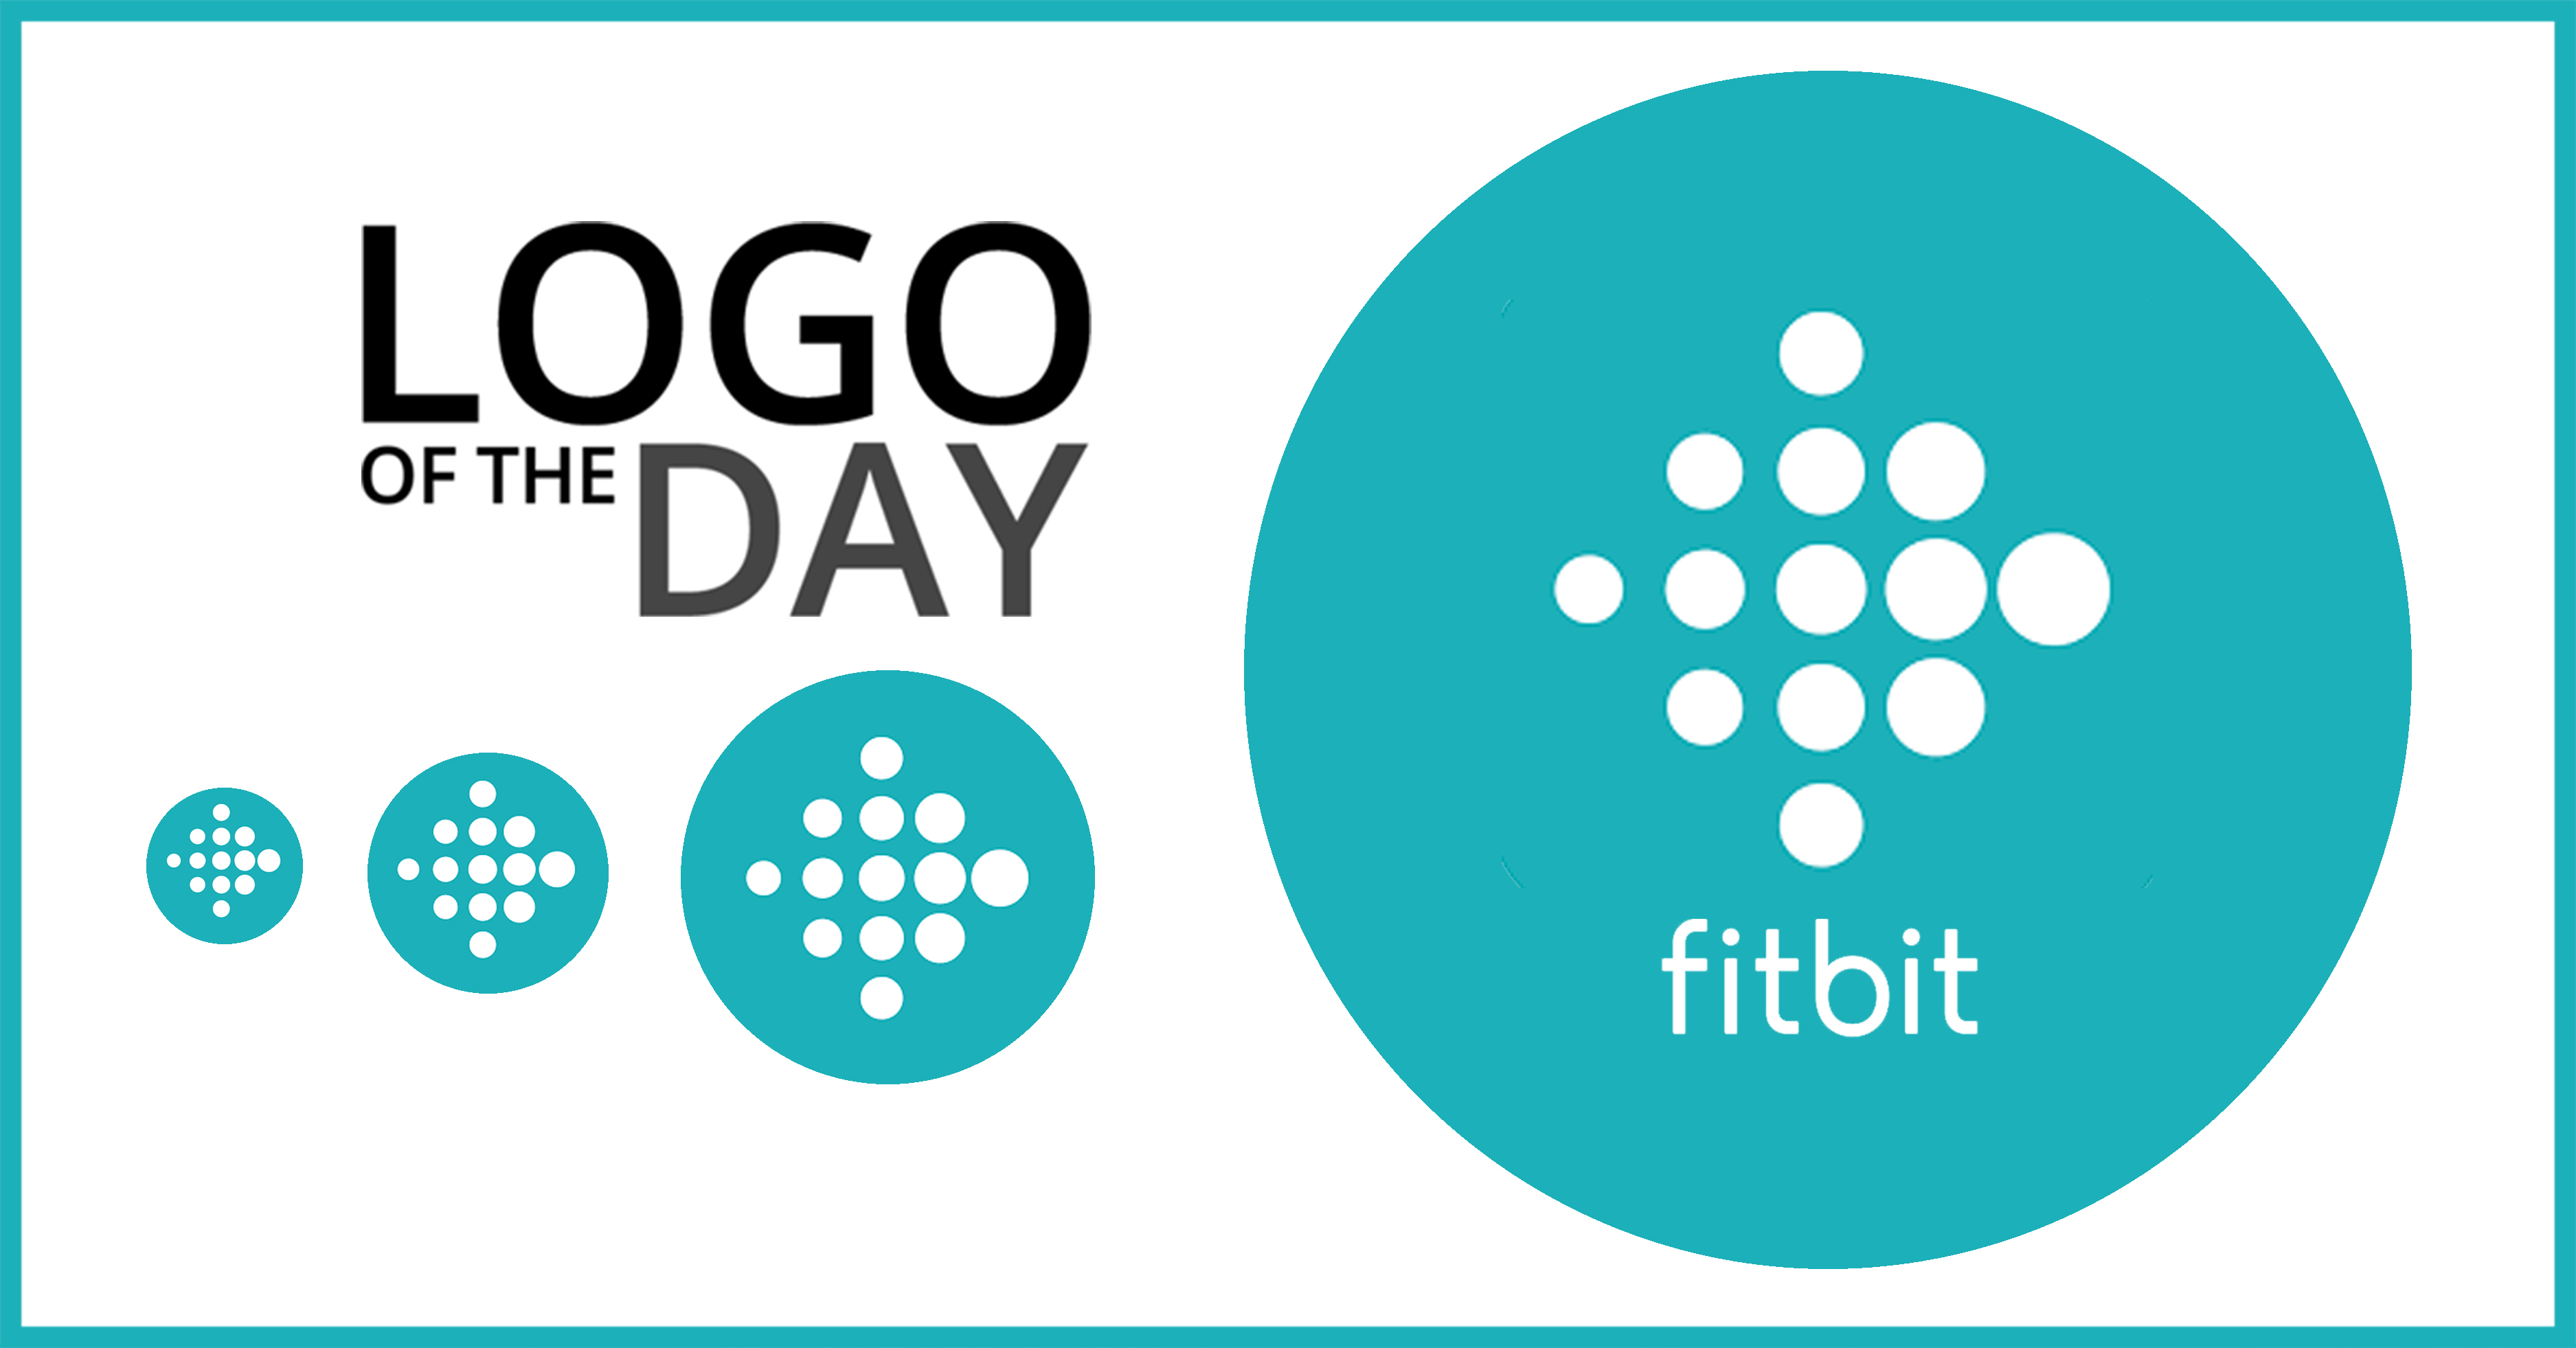 Fitbit Logo - Fitbit: Logo of the Day - June 19, 2018